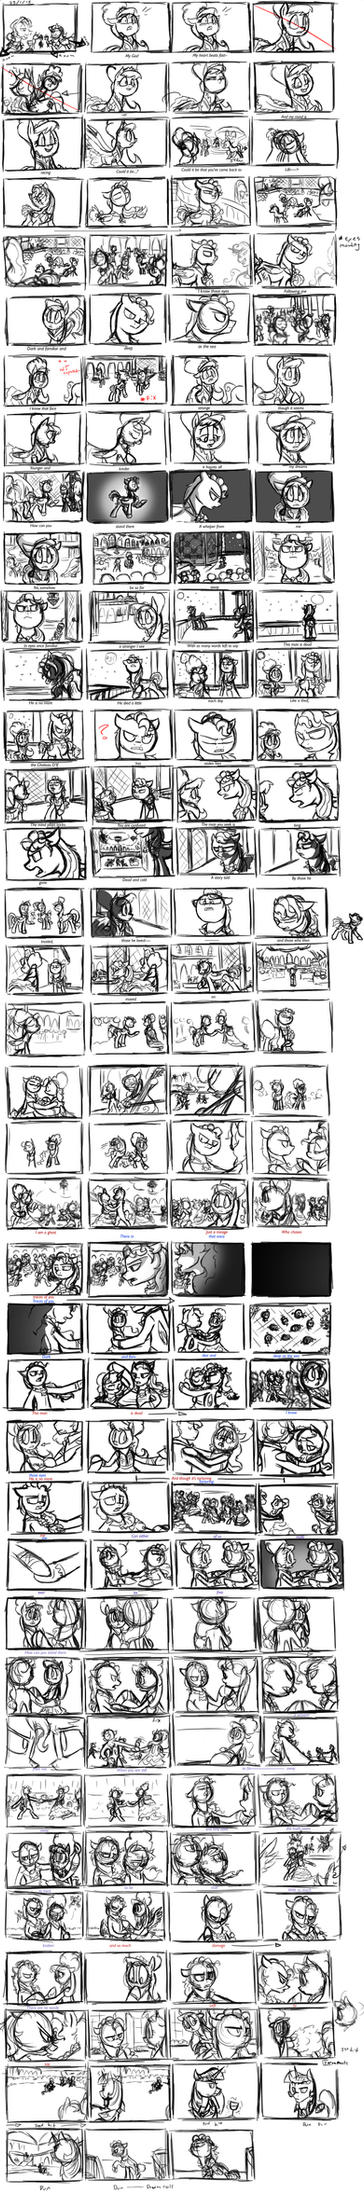 I Know Those Eyes: Original Storyboard by Assassin-or-Shadow